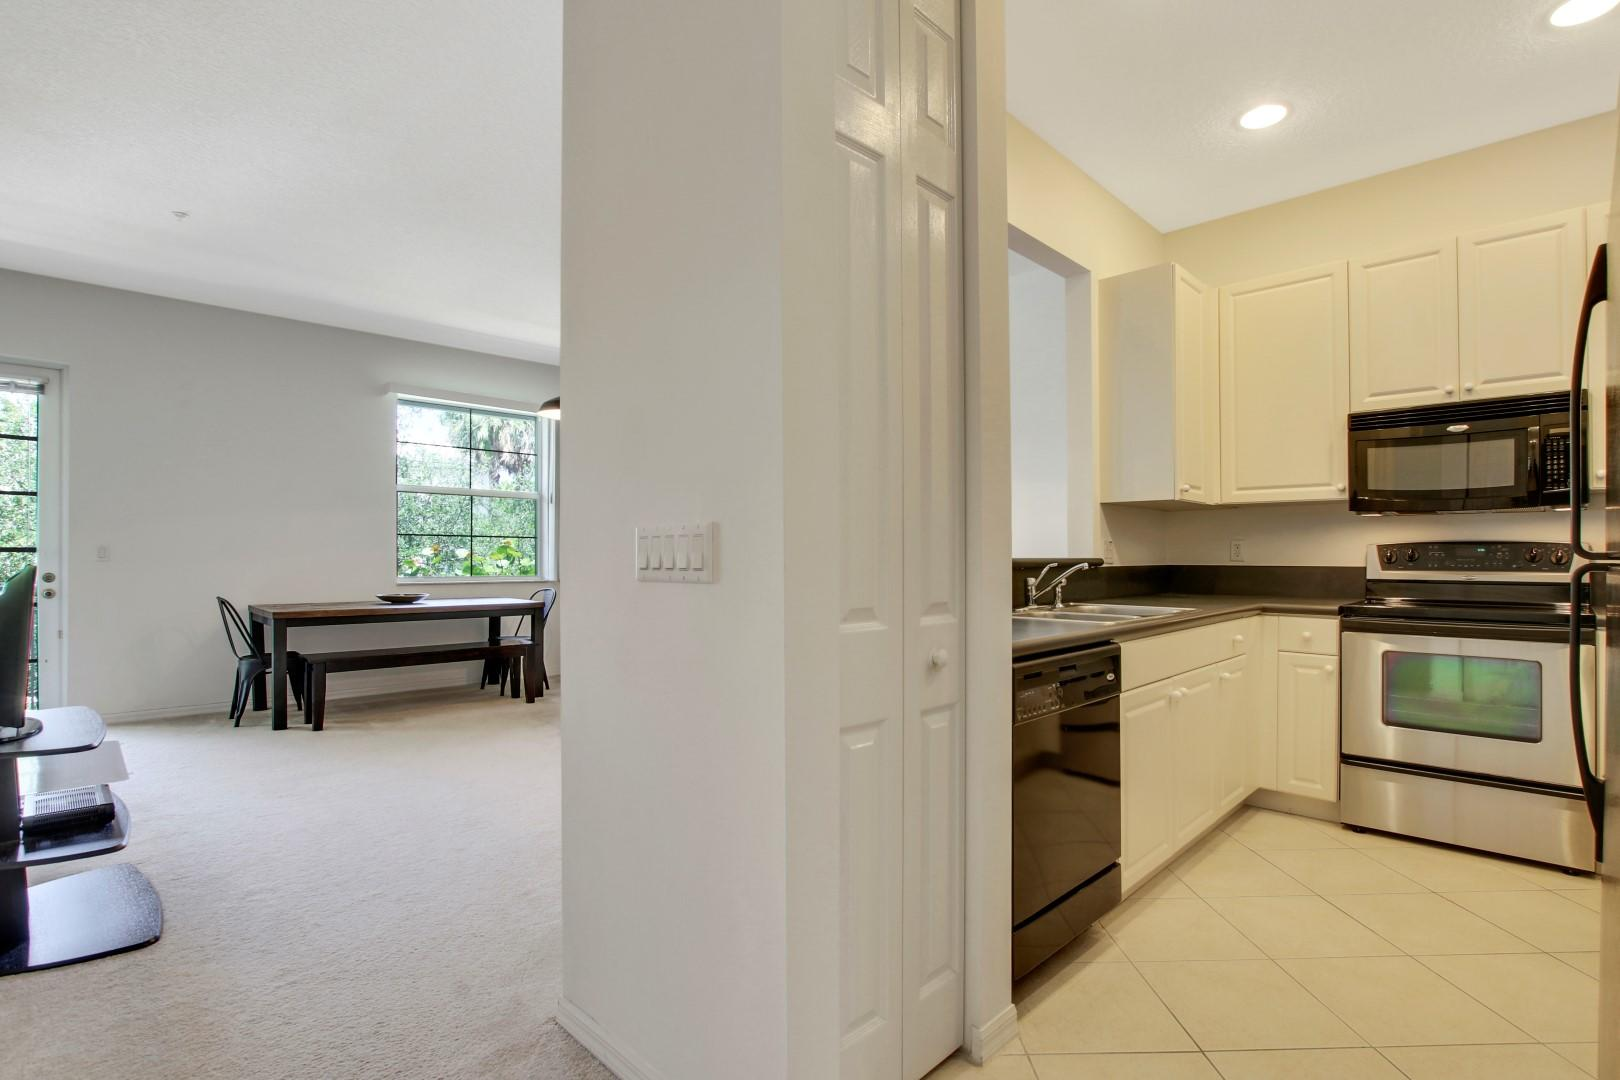 1552 Frederick Small Road 12-D  - Abacoa Homes - photo 13